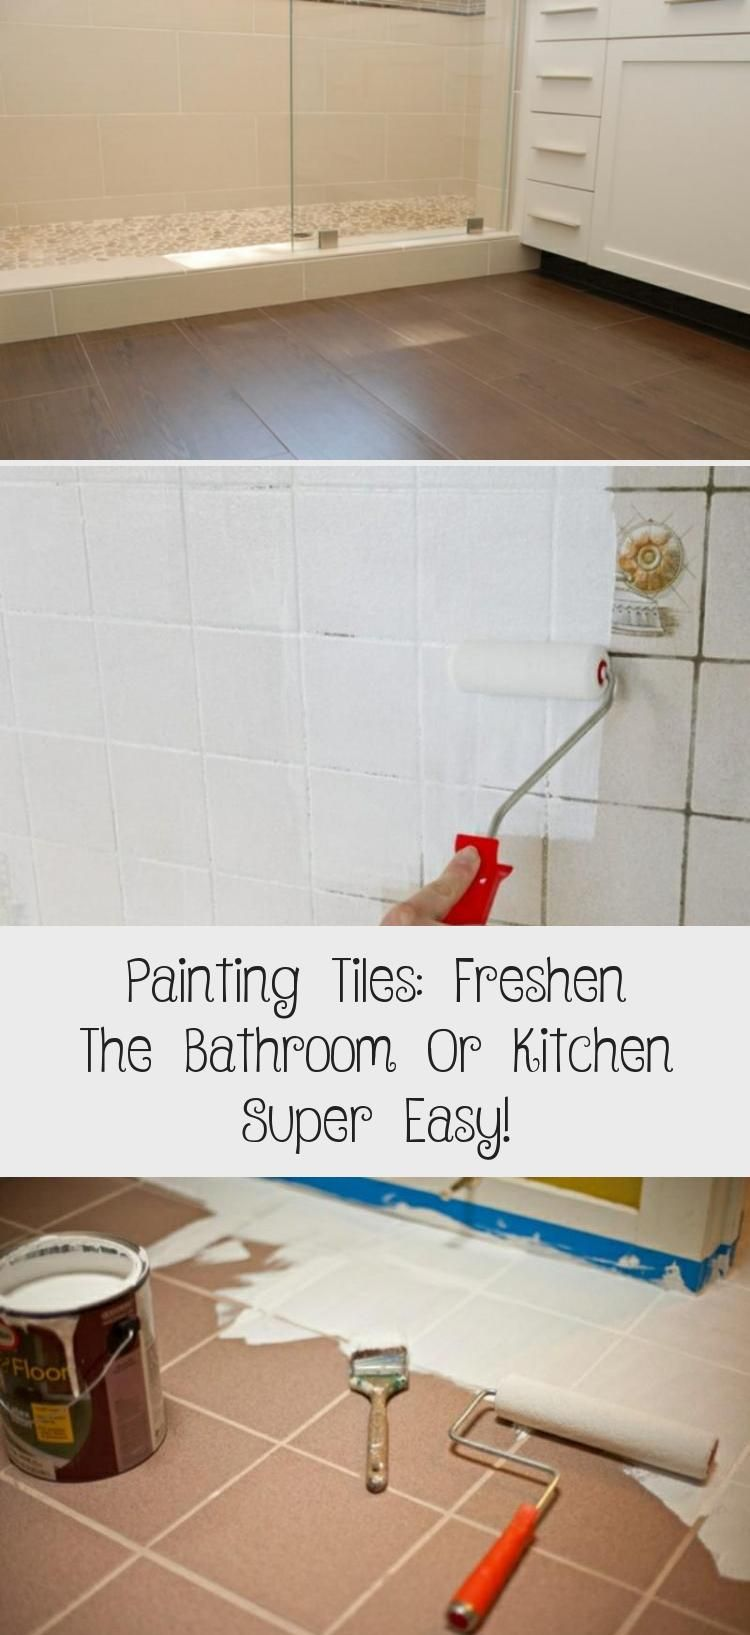 Painting Tiles Freshen The Bathroom Or Kitchen Super Easy Painting tiles freshen the bathroom or kitchen super easy